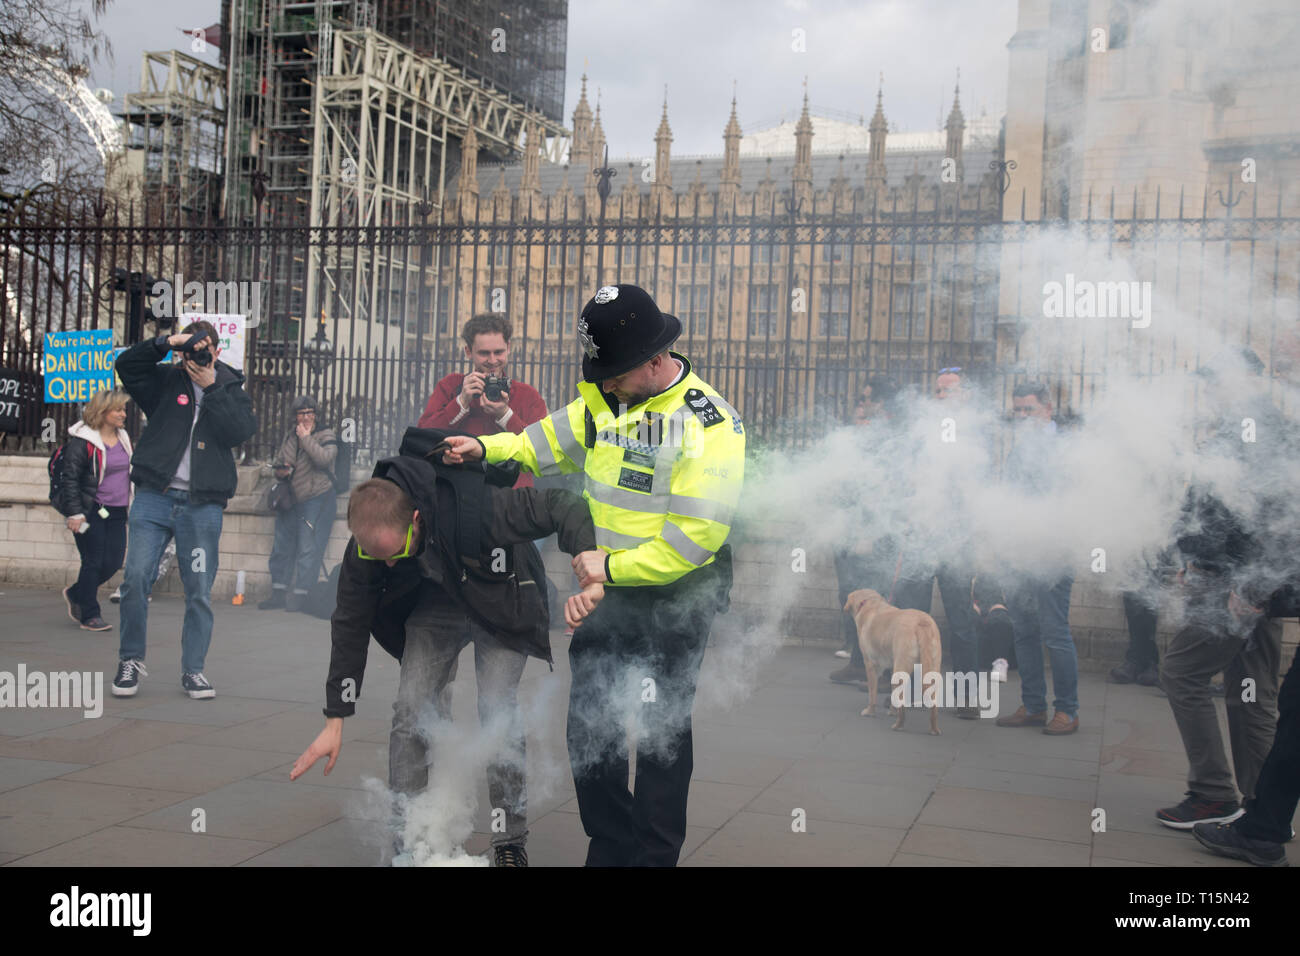 London, UK. 23 March, 2019. A protester, outside the House of Parliament, Westminster, ignites a firework and he is taken away by the police. Credit: Santo Basone/Alamy Live News Stock Photo